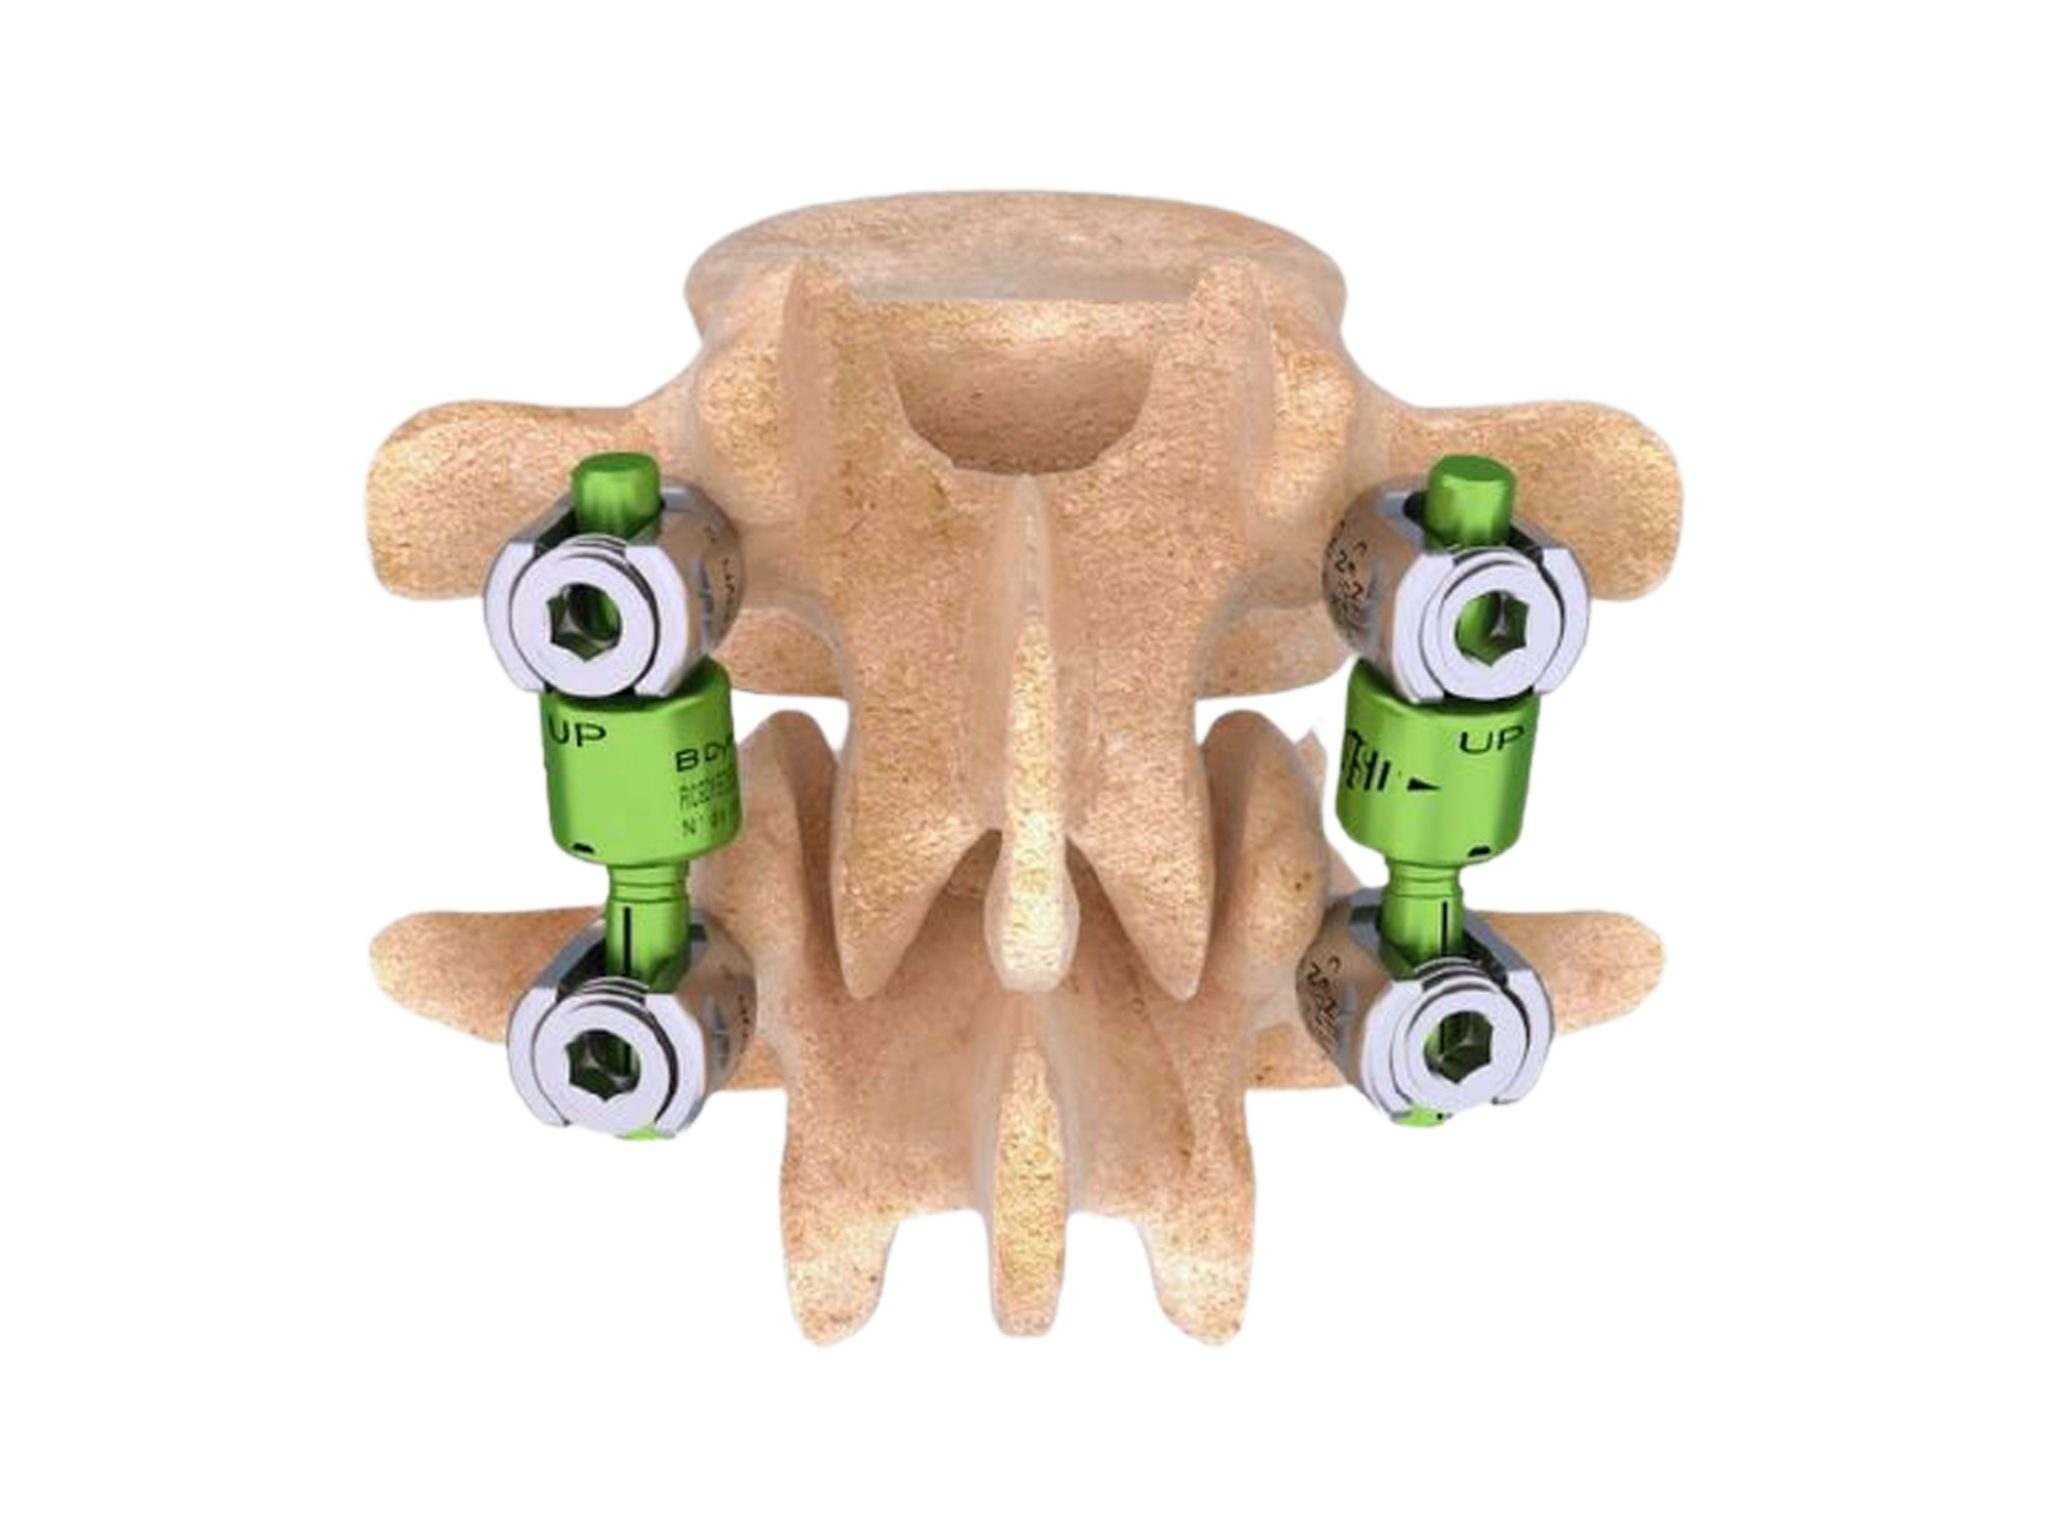 Cousin Surgery BDyn implant - Posterior dynamic motion preservation system which is designed for application from thoracic vertebrae T10 to sacrum S1.